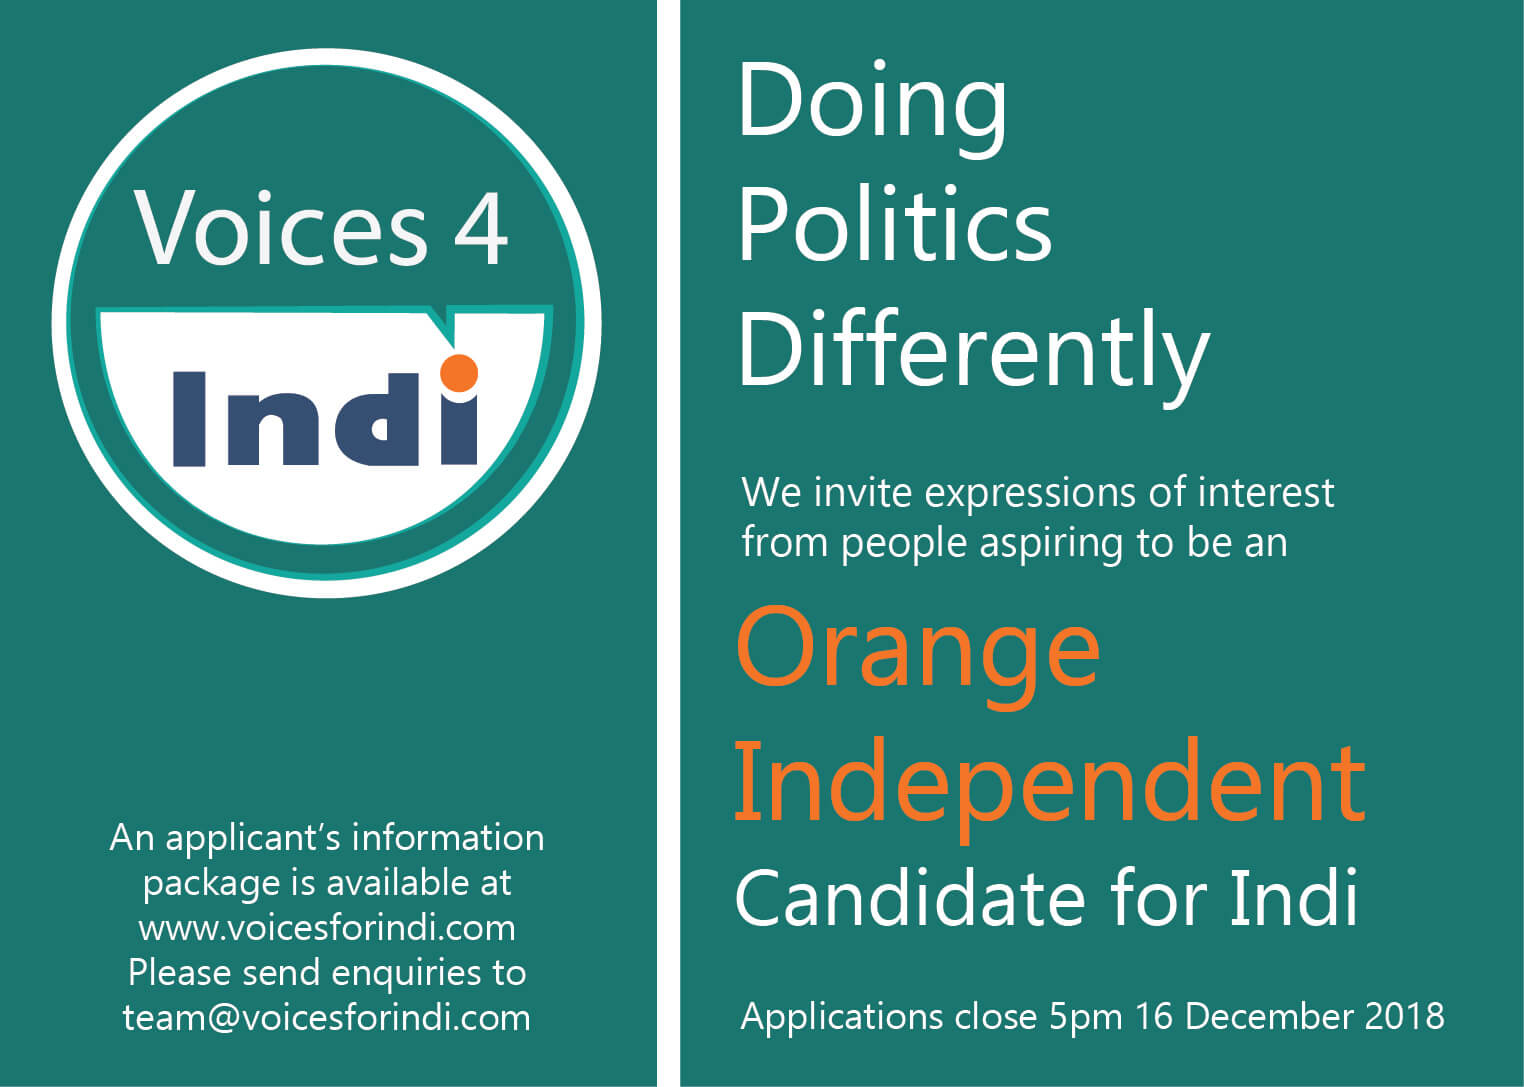 Be an Orange Independent!